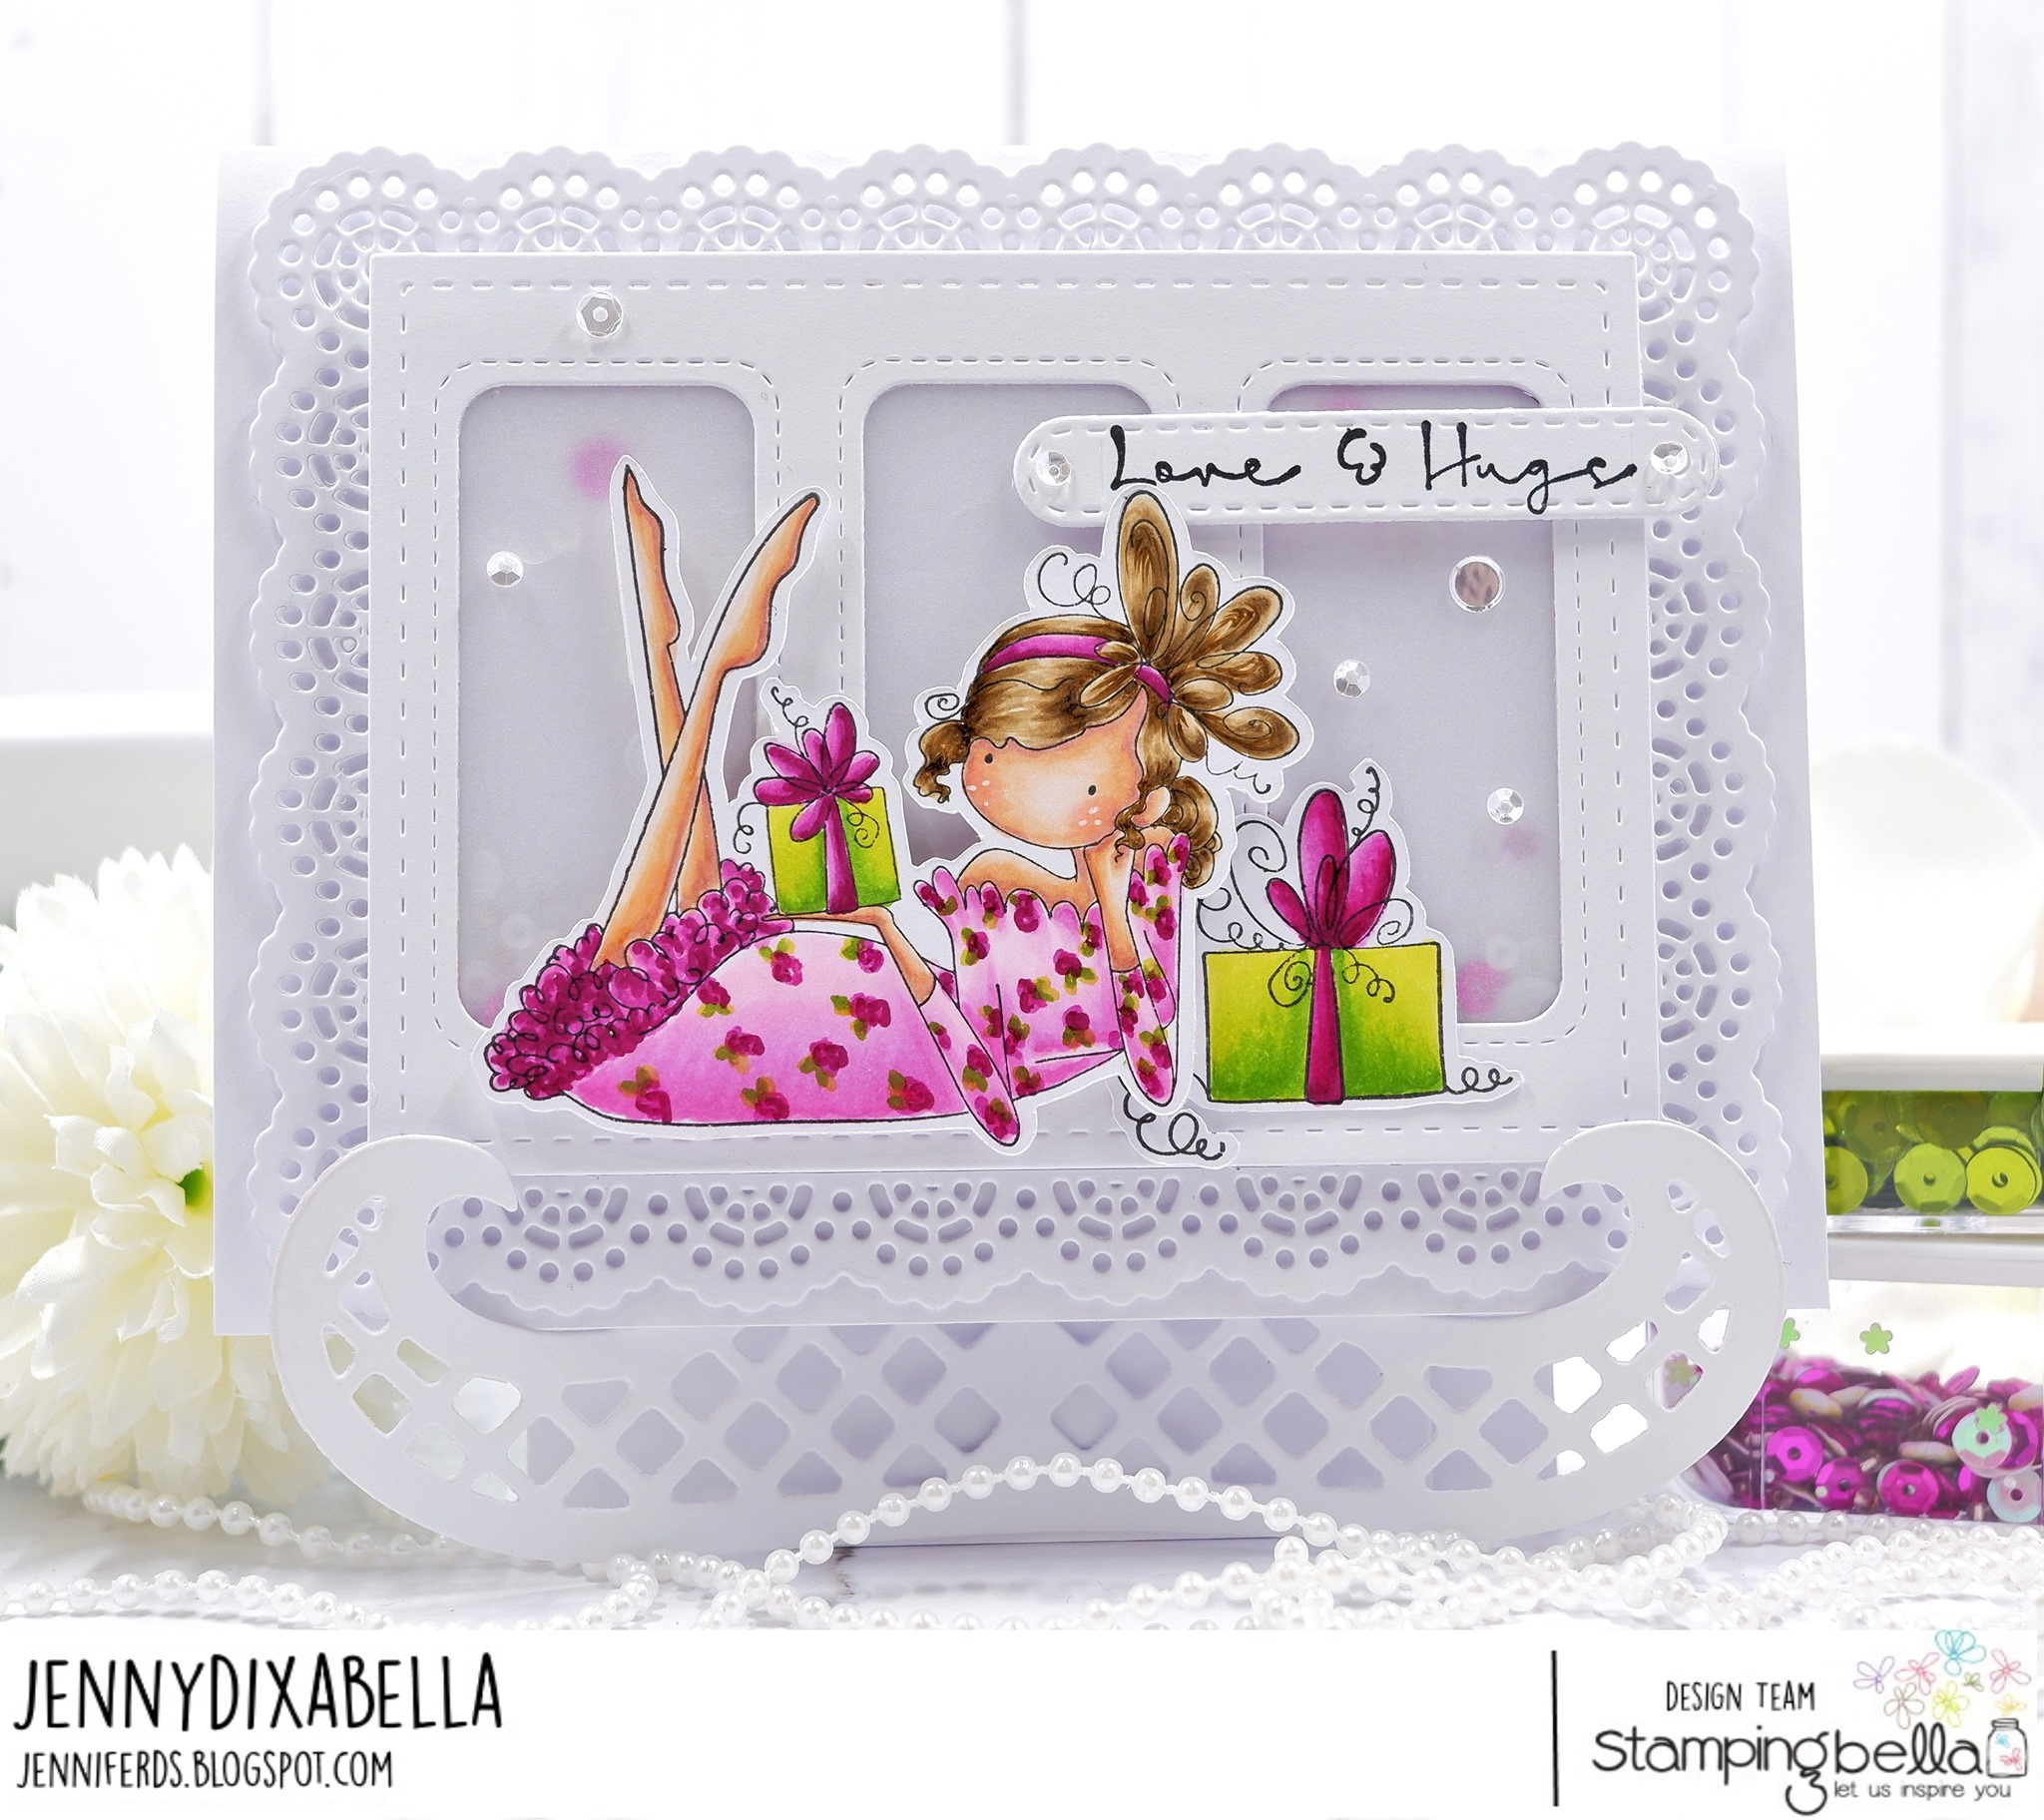 www.stampingbella.com: rubber stamp used: UPTOWN GIRL GLENDA loves Gifts card by Jenny Dix